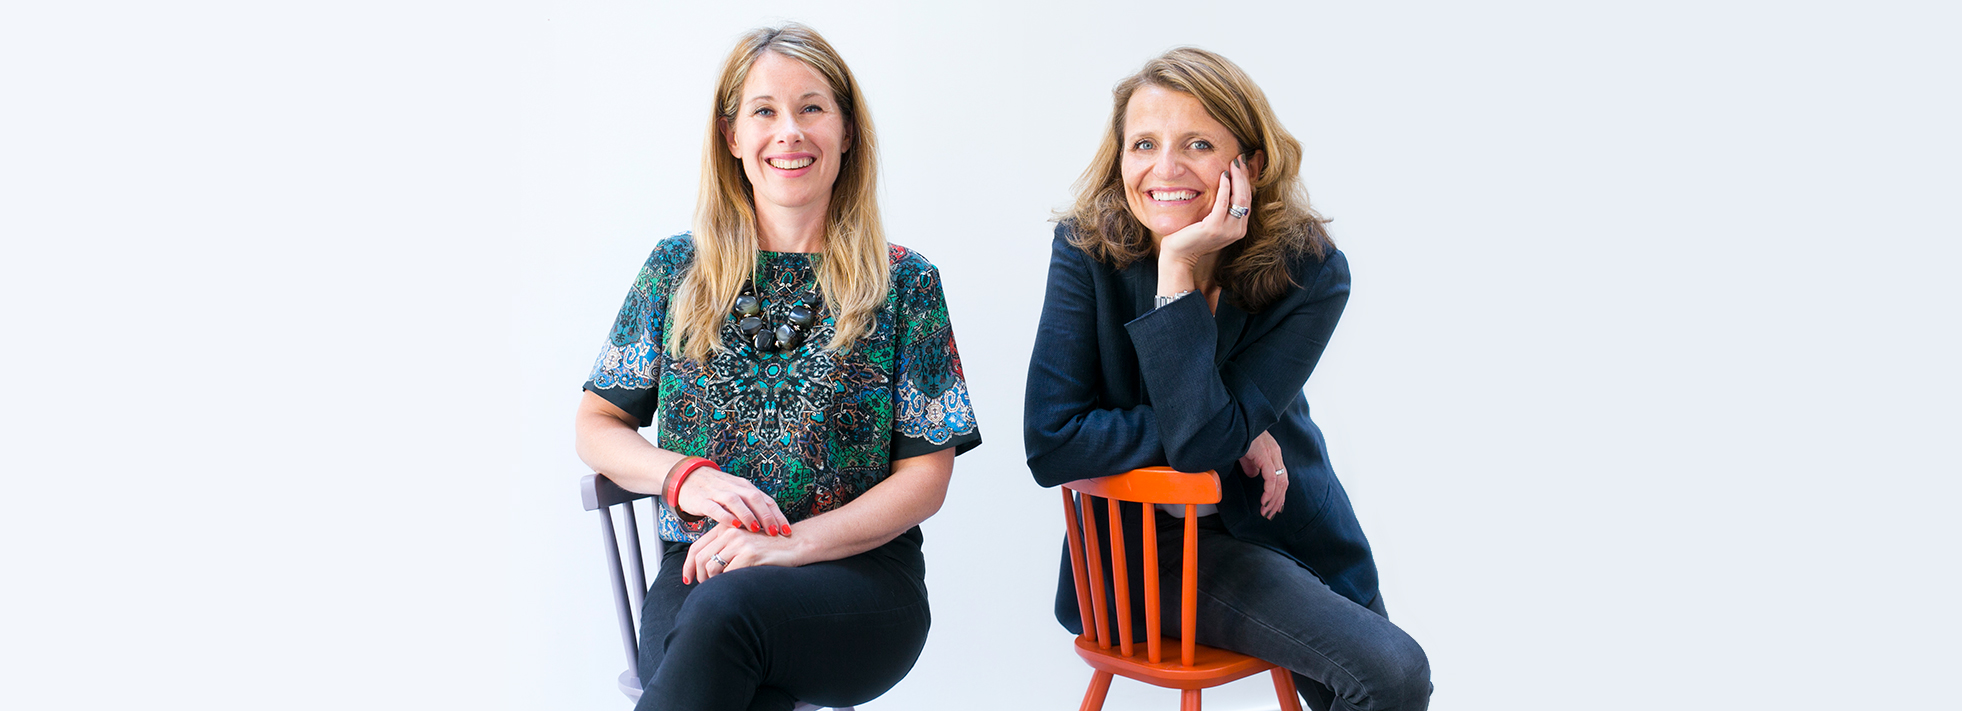 Ali Johnson and Alex Keith sitting on purple chair and orange chair